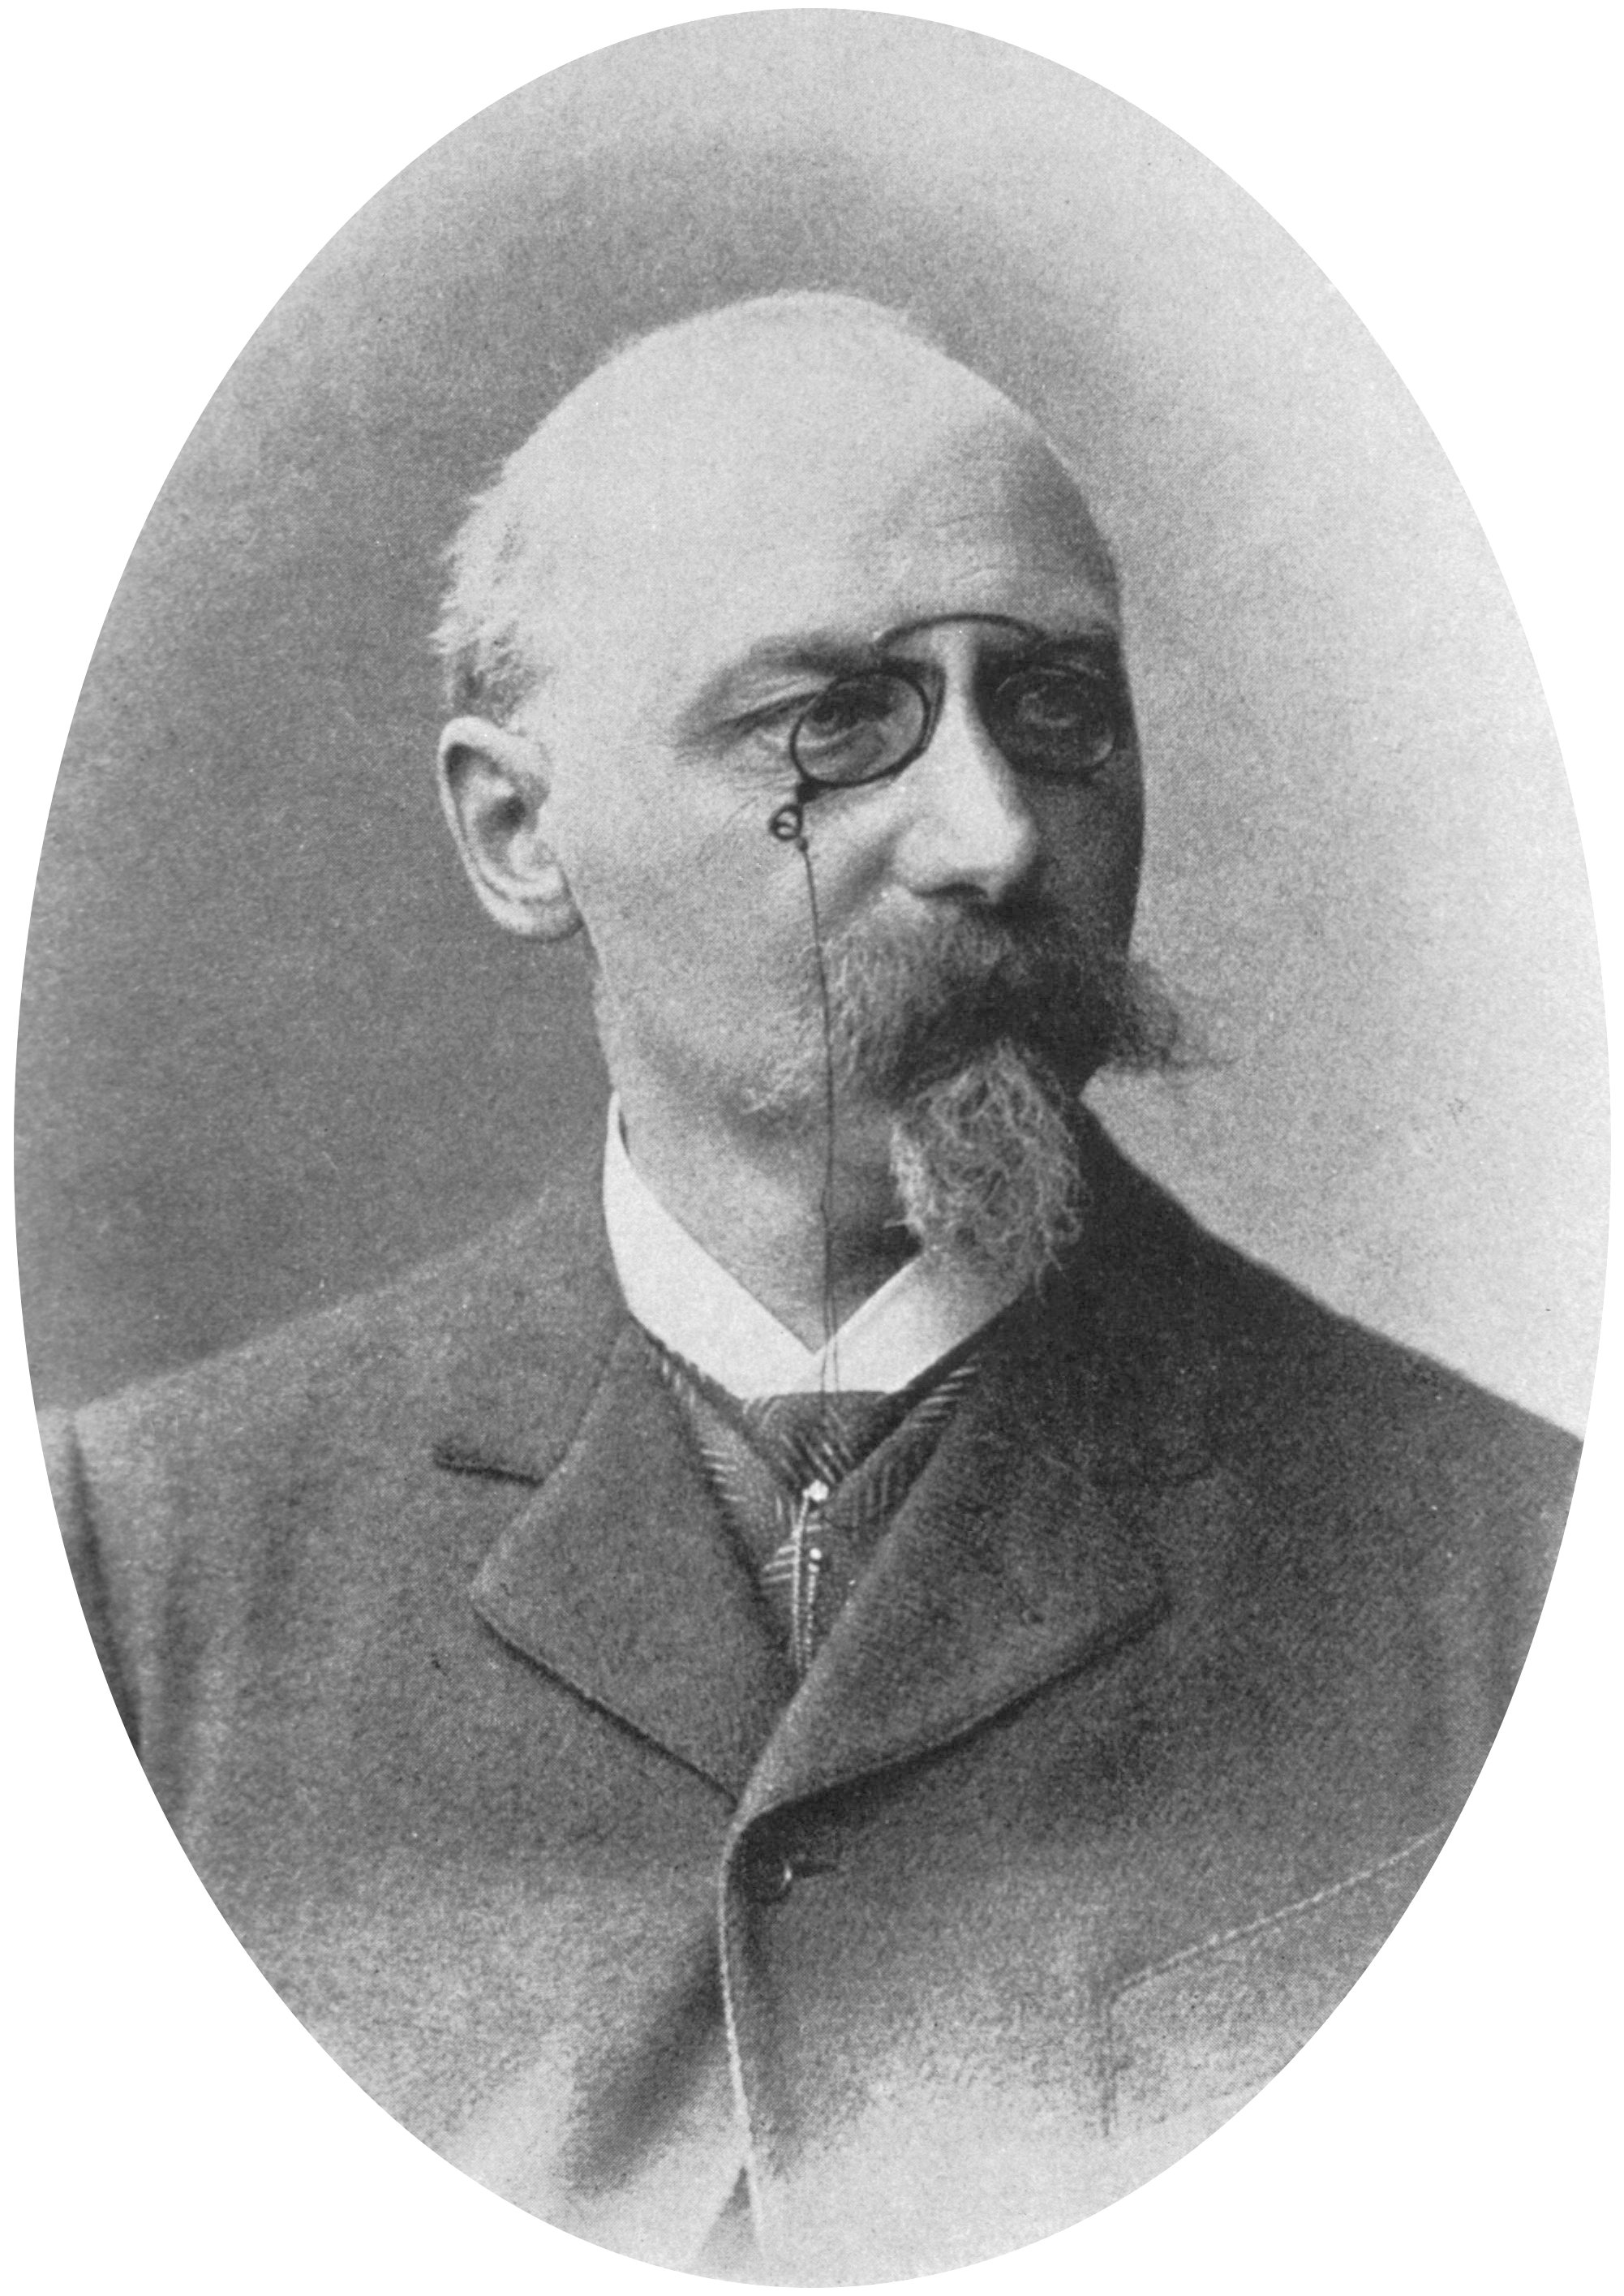 Walther >> File:Walther Flemming.jpg - Wikimedia Commons